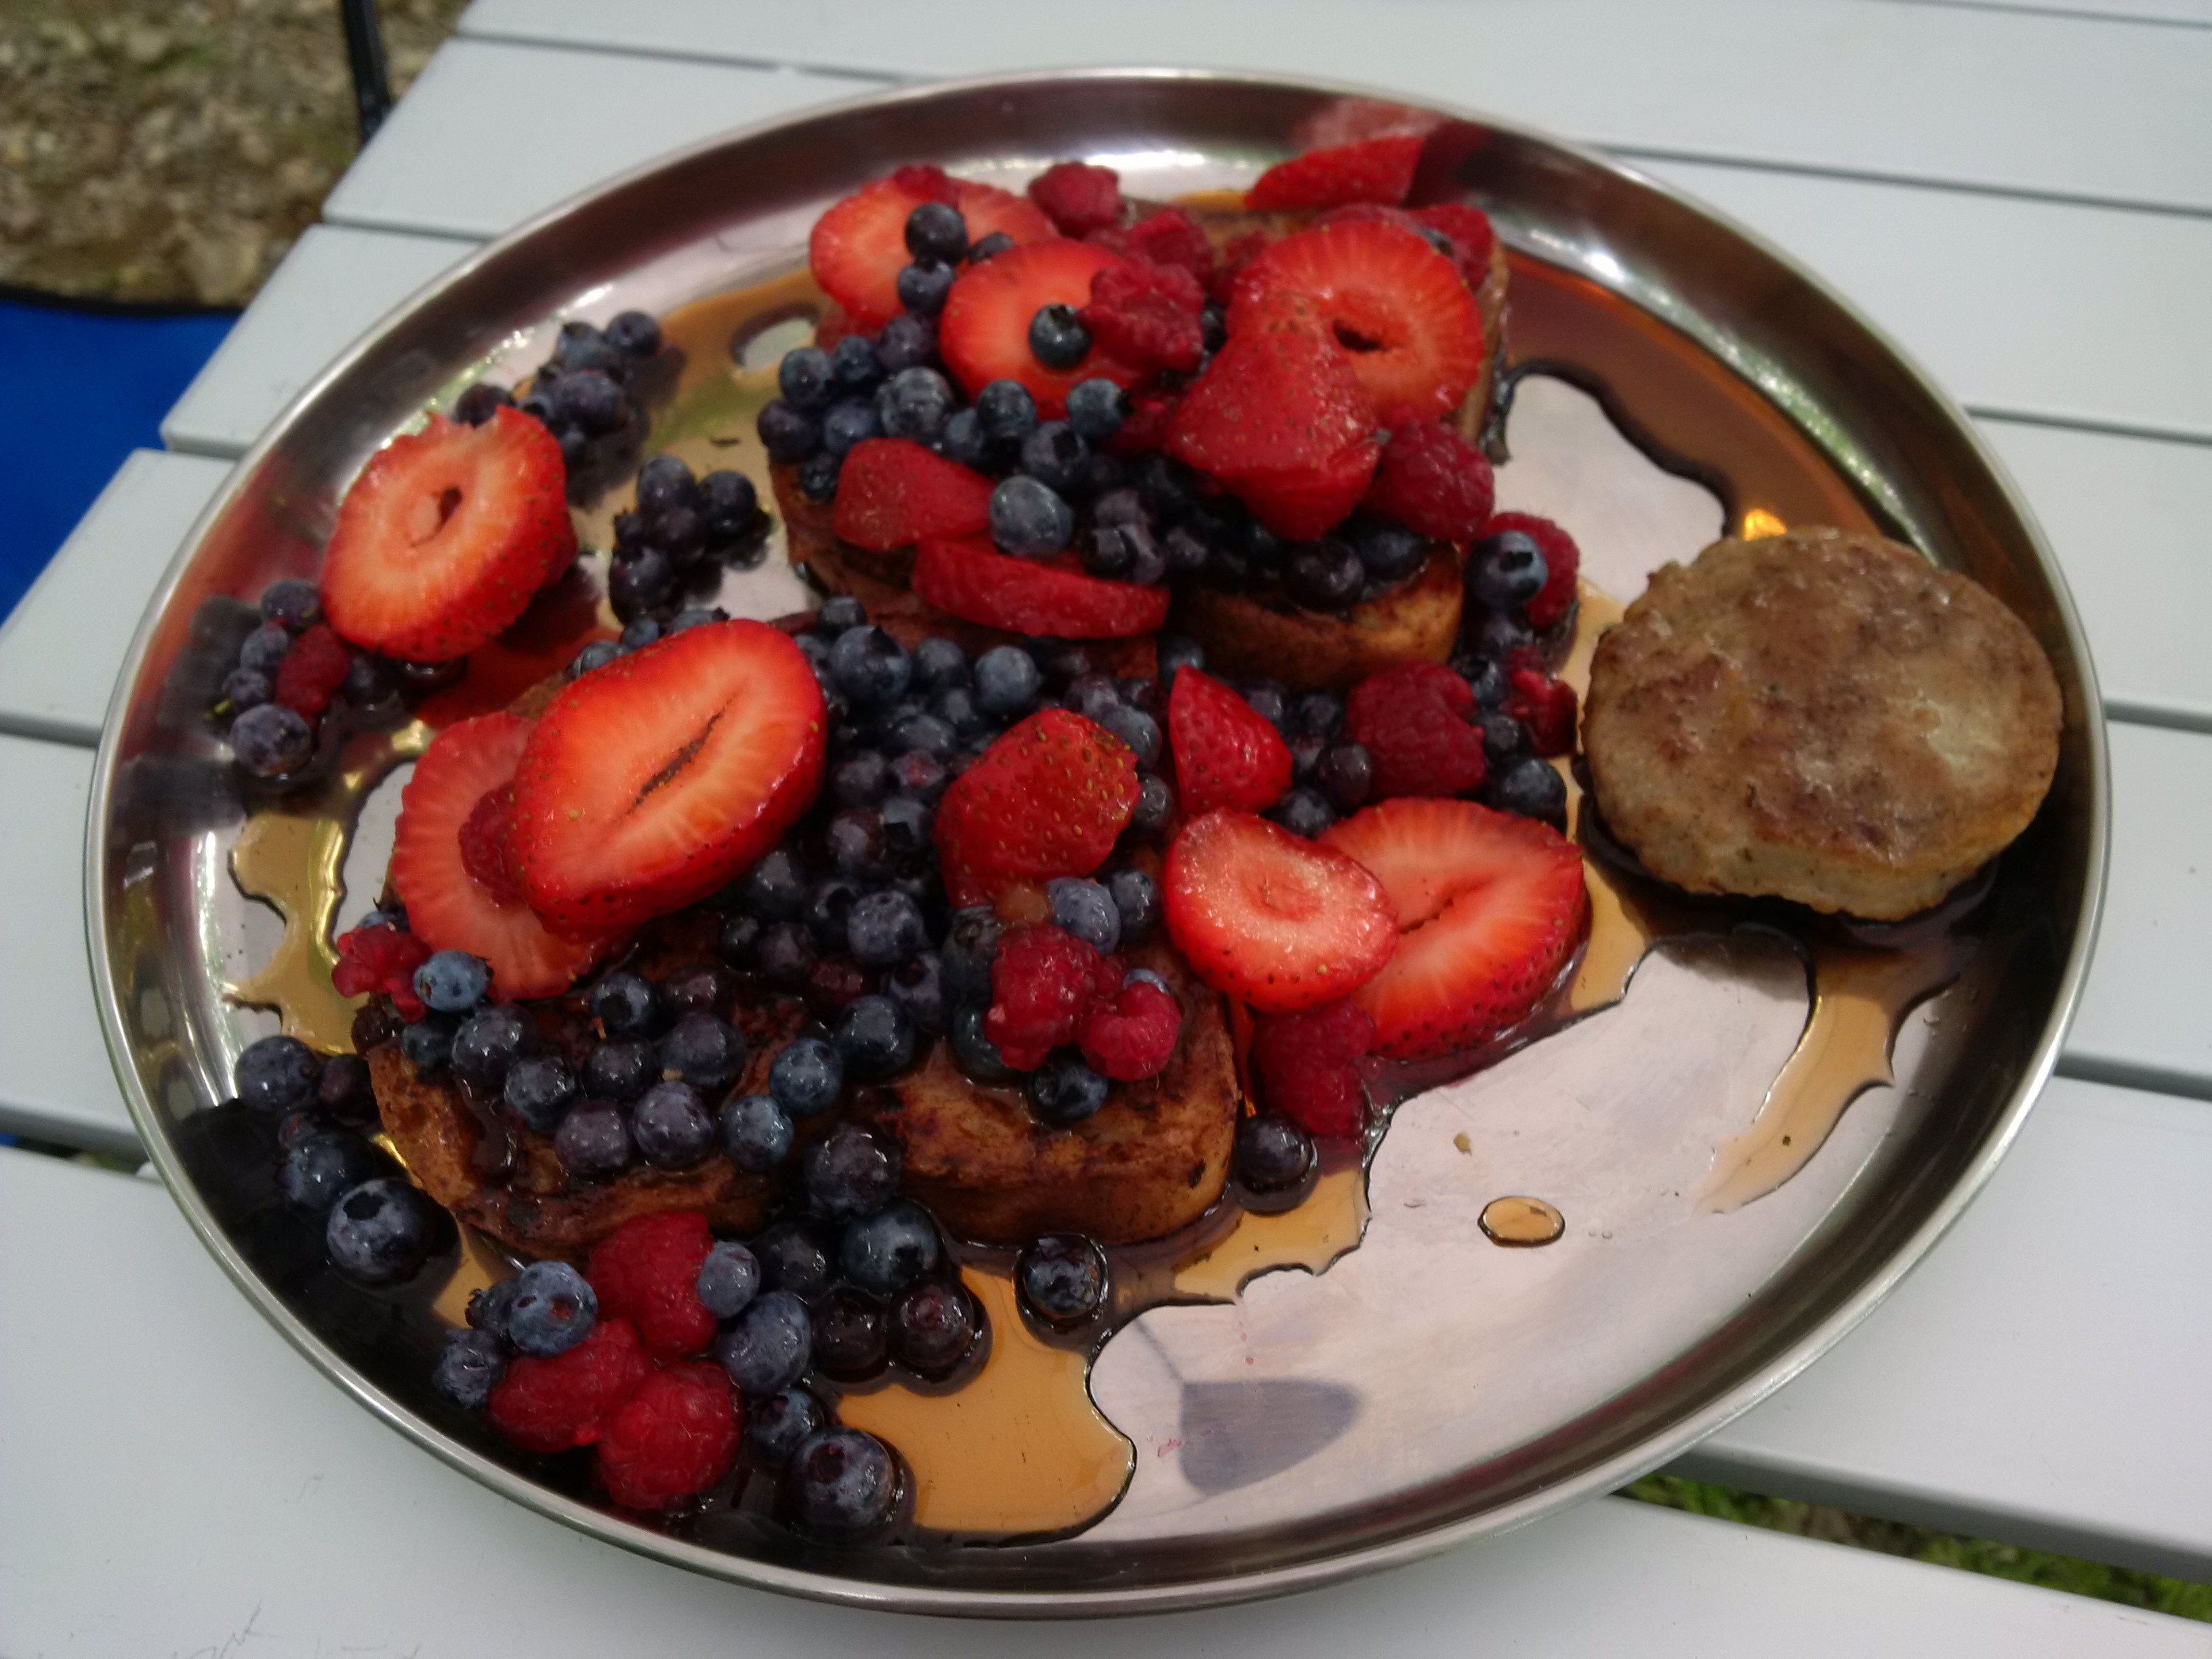 camping-french-toast-07-31-16